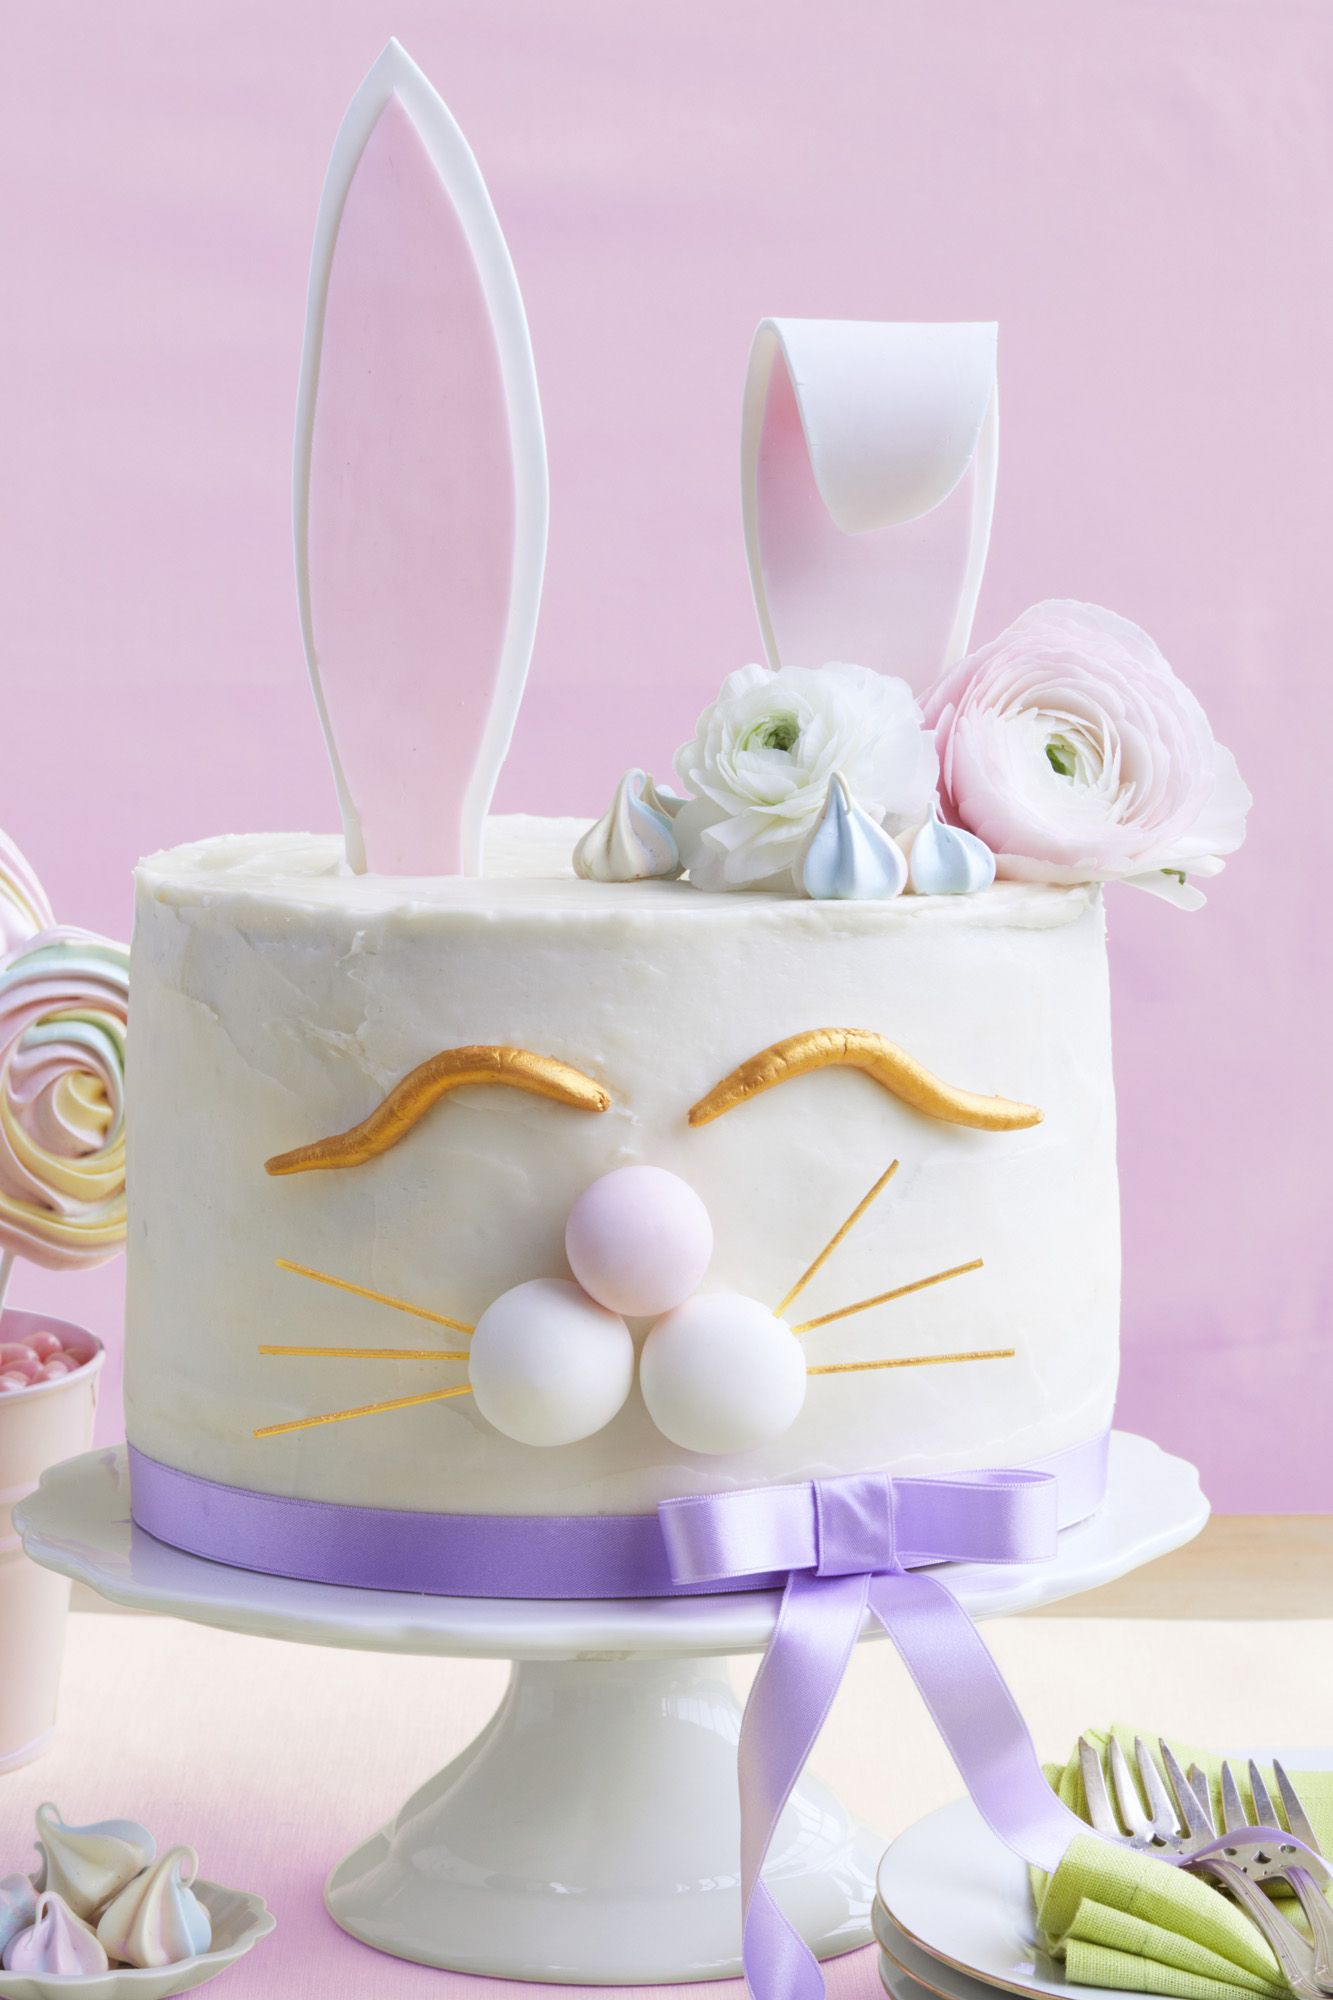 26 Best Easter Cakes - Ideas & Recipes for Cute Easter Cakes